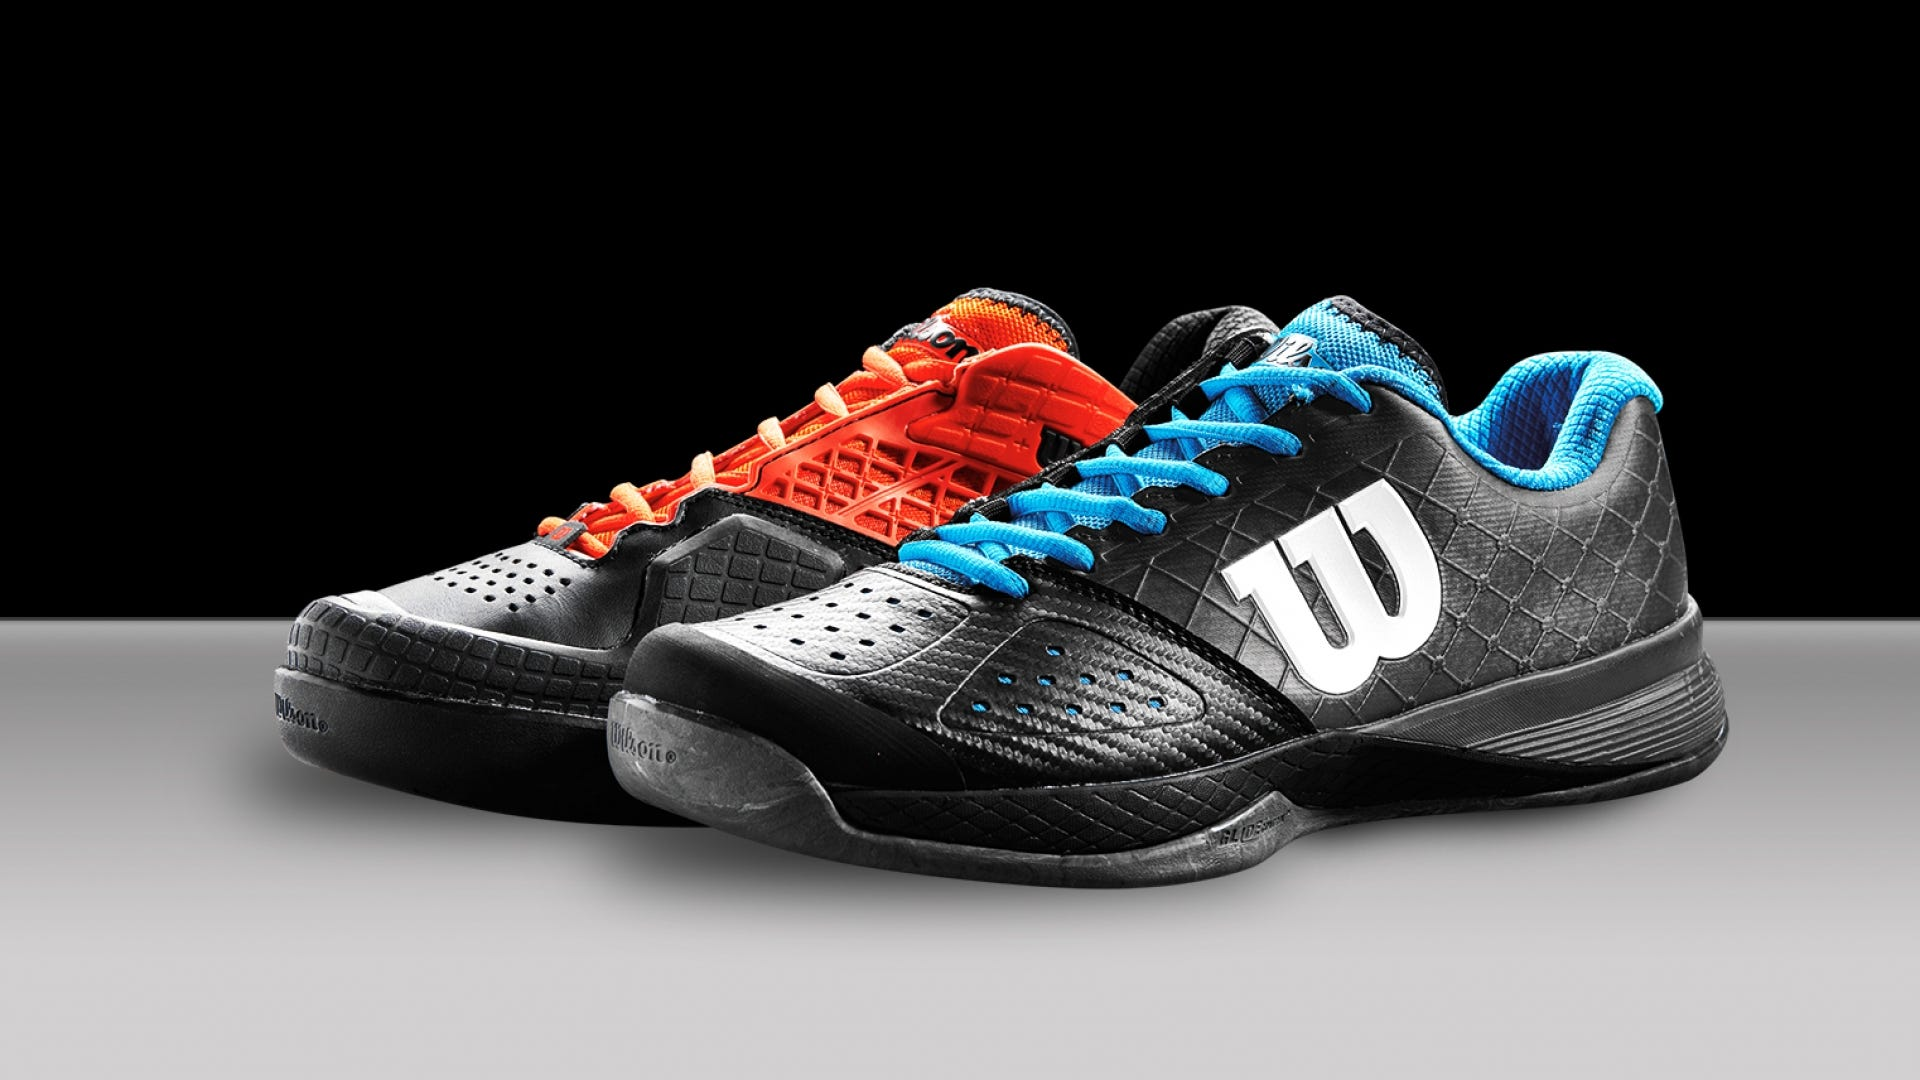 Glide  The World s Only Tennis Shoes Made to Slide on Hardcourt f85af99ed